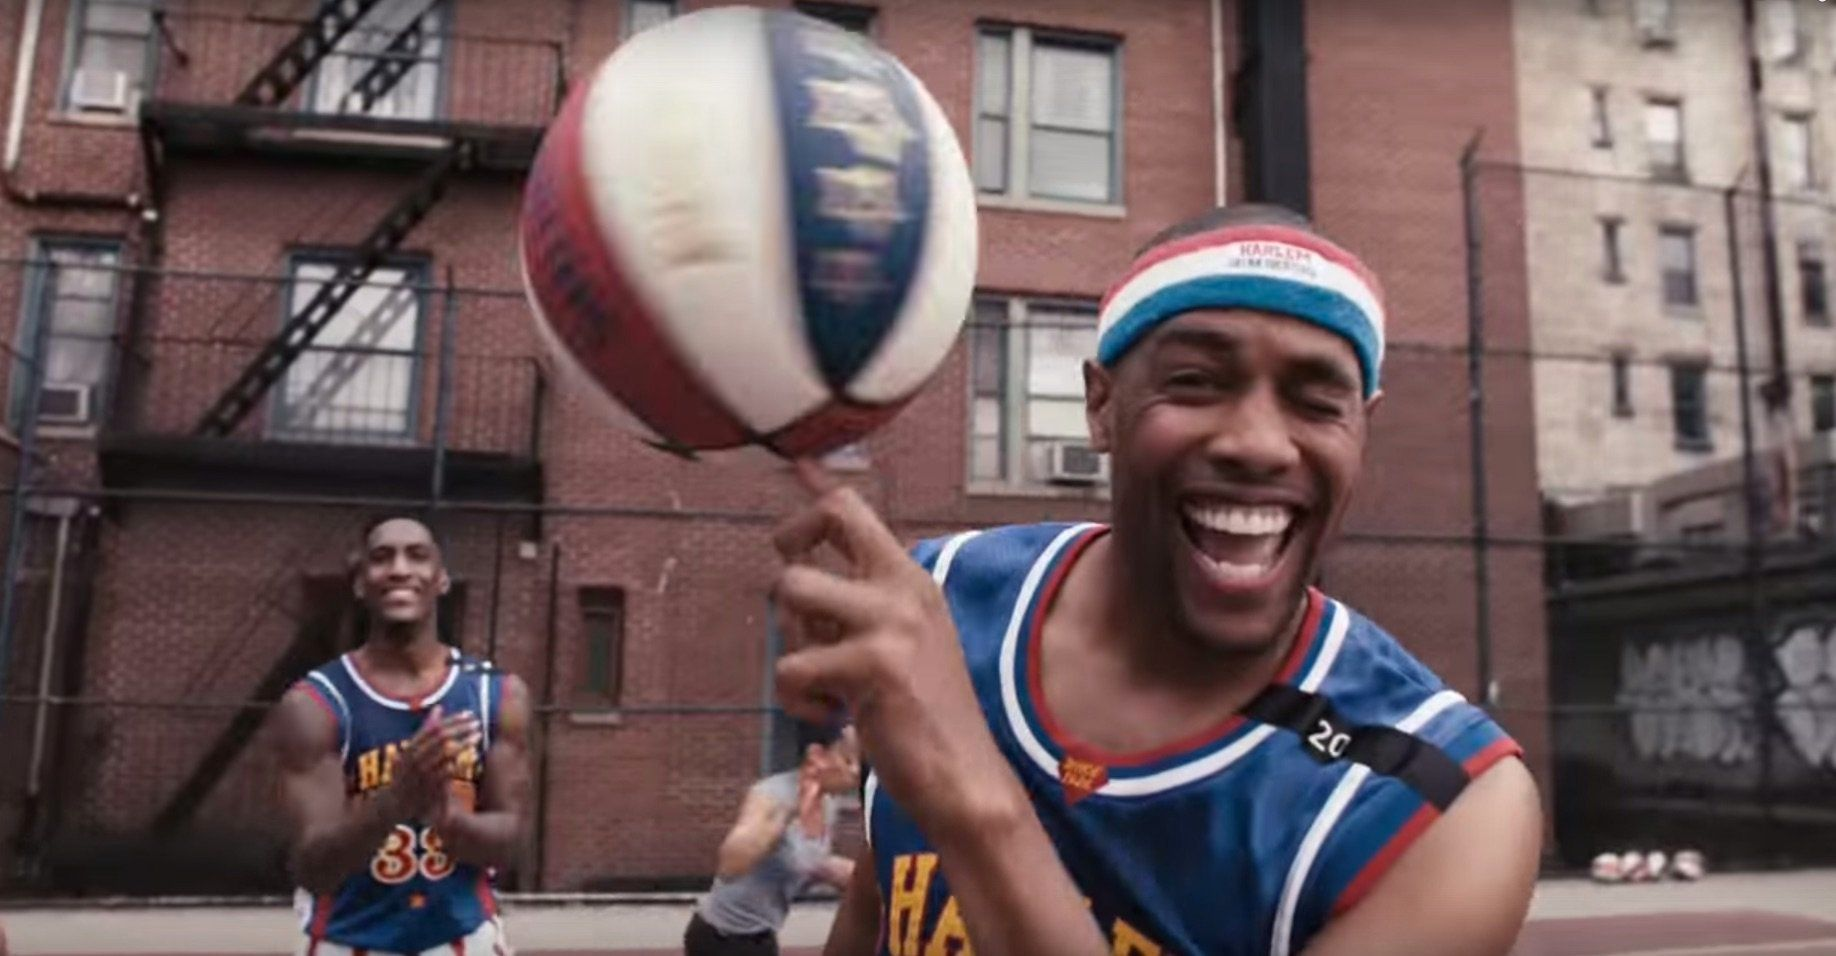 The Harlem Globetrotters team up with 'Stomp'